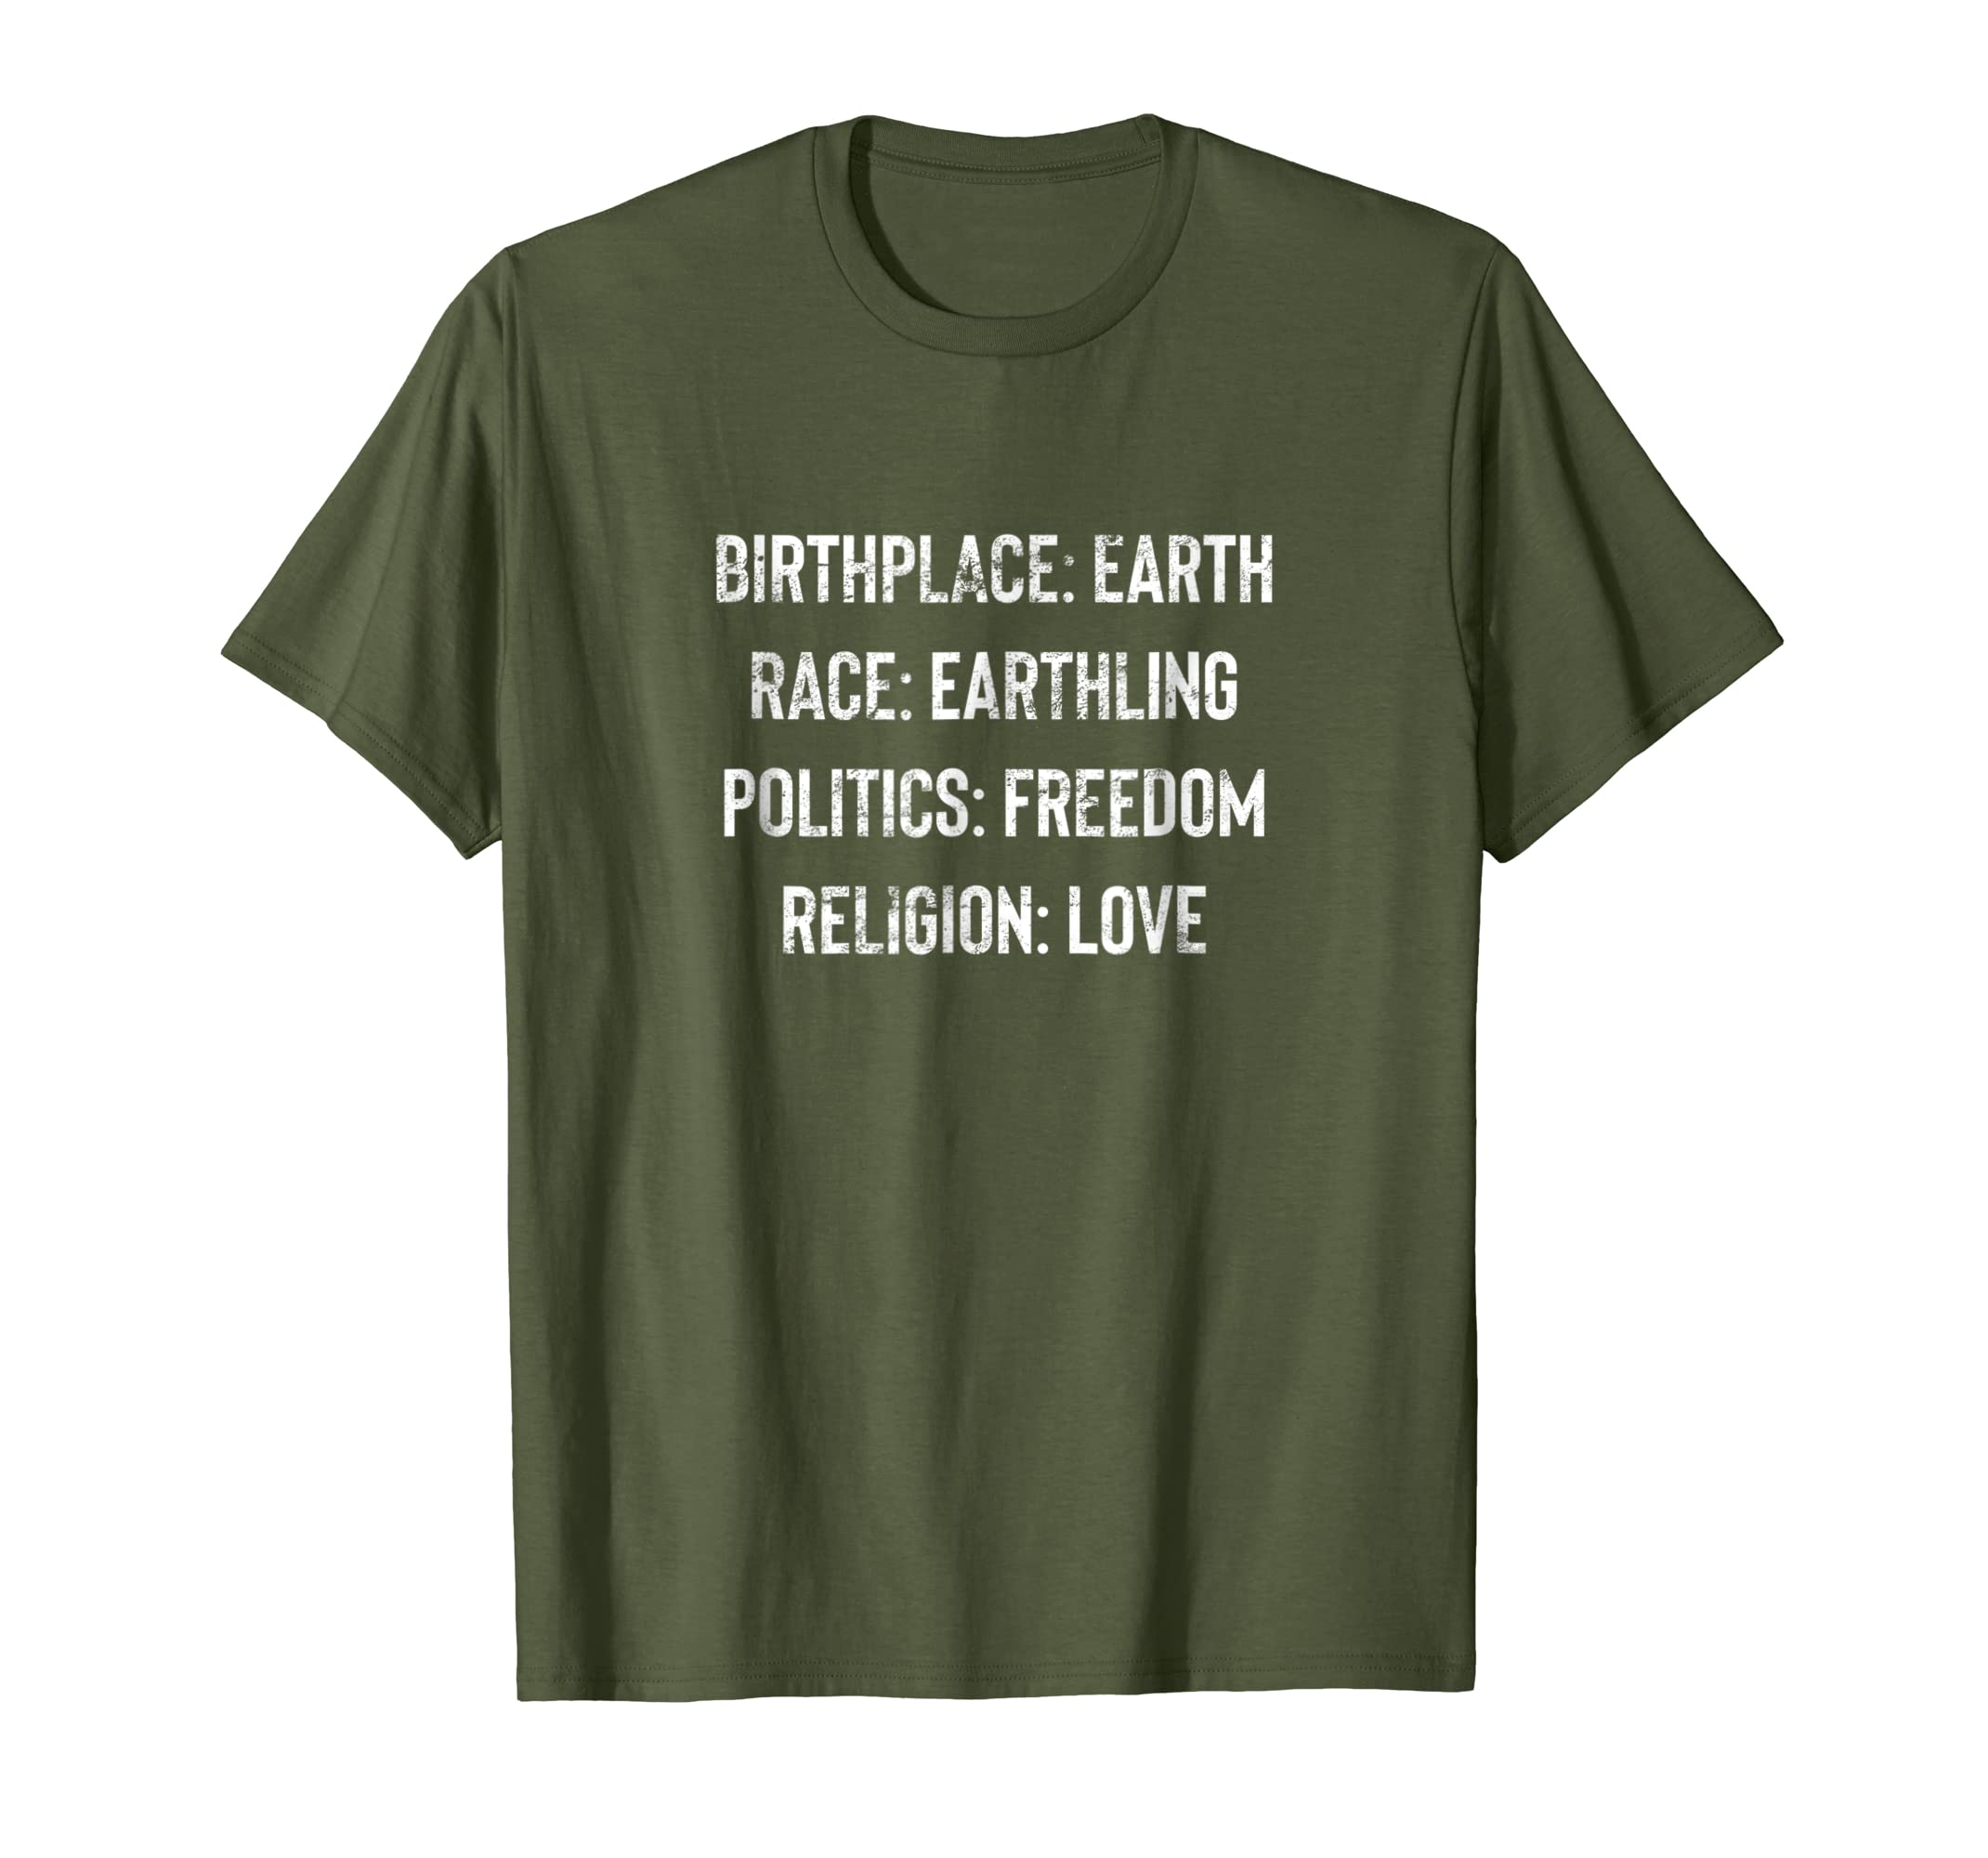 a6dc0cf6 Amazon.com: Birthplace Earth Race Earthling Politics Freedom Love Shirt:  Clothing